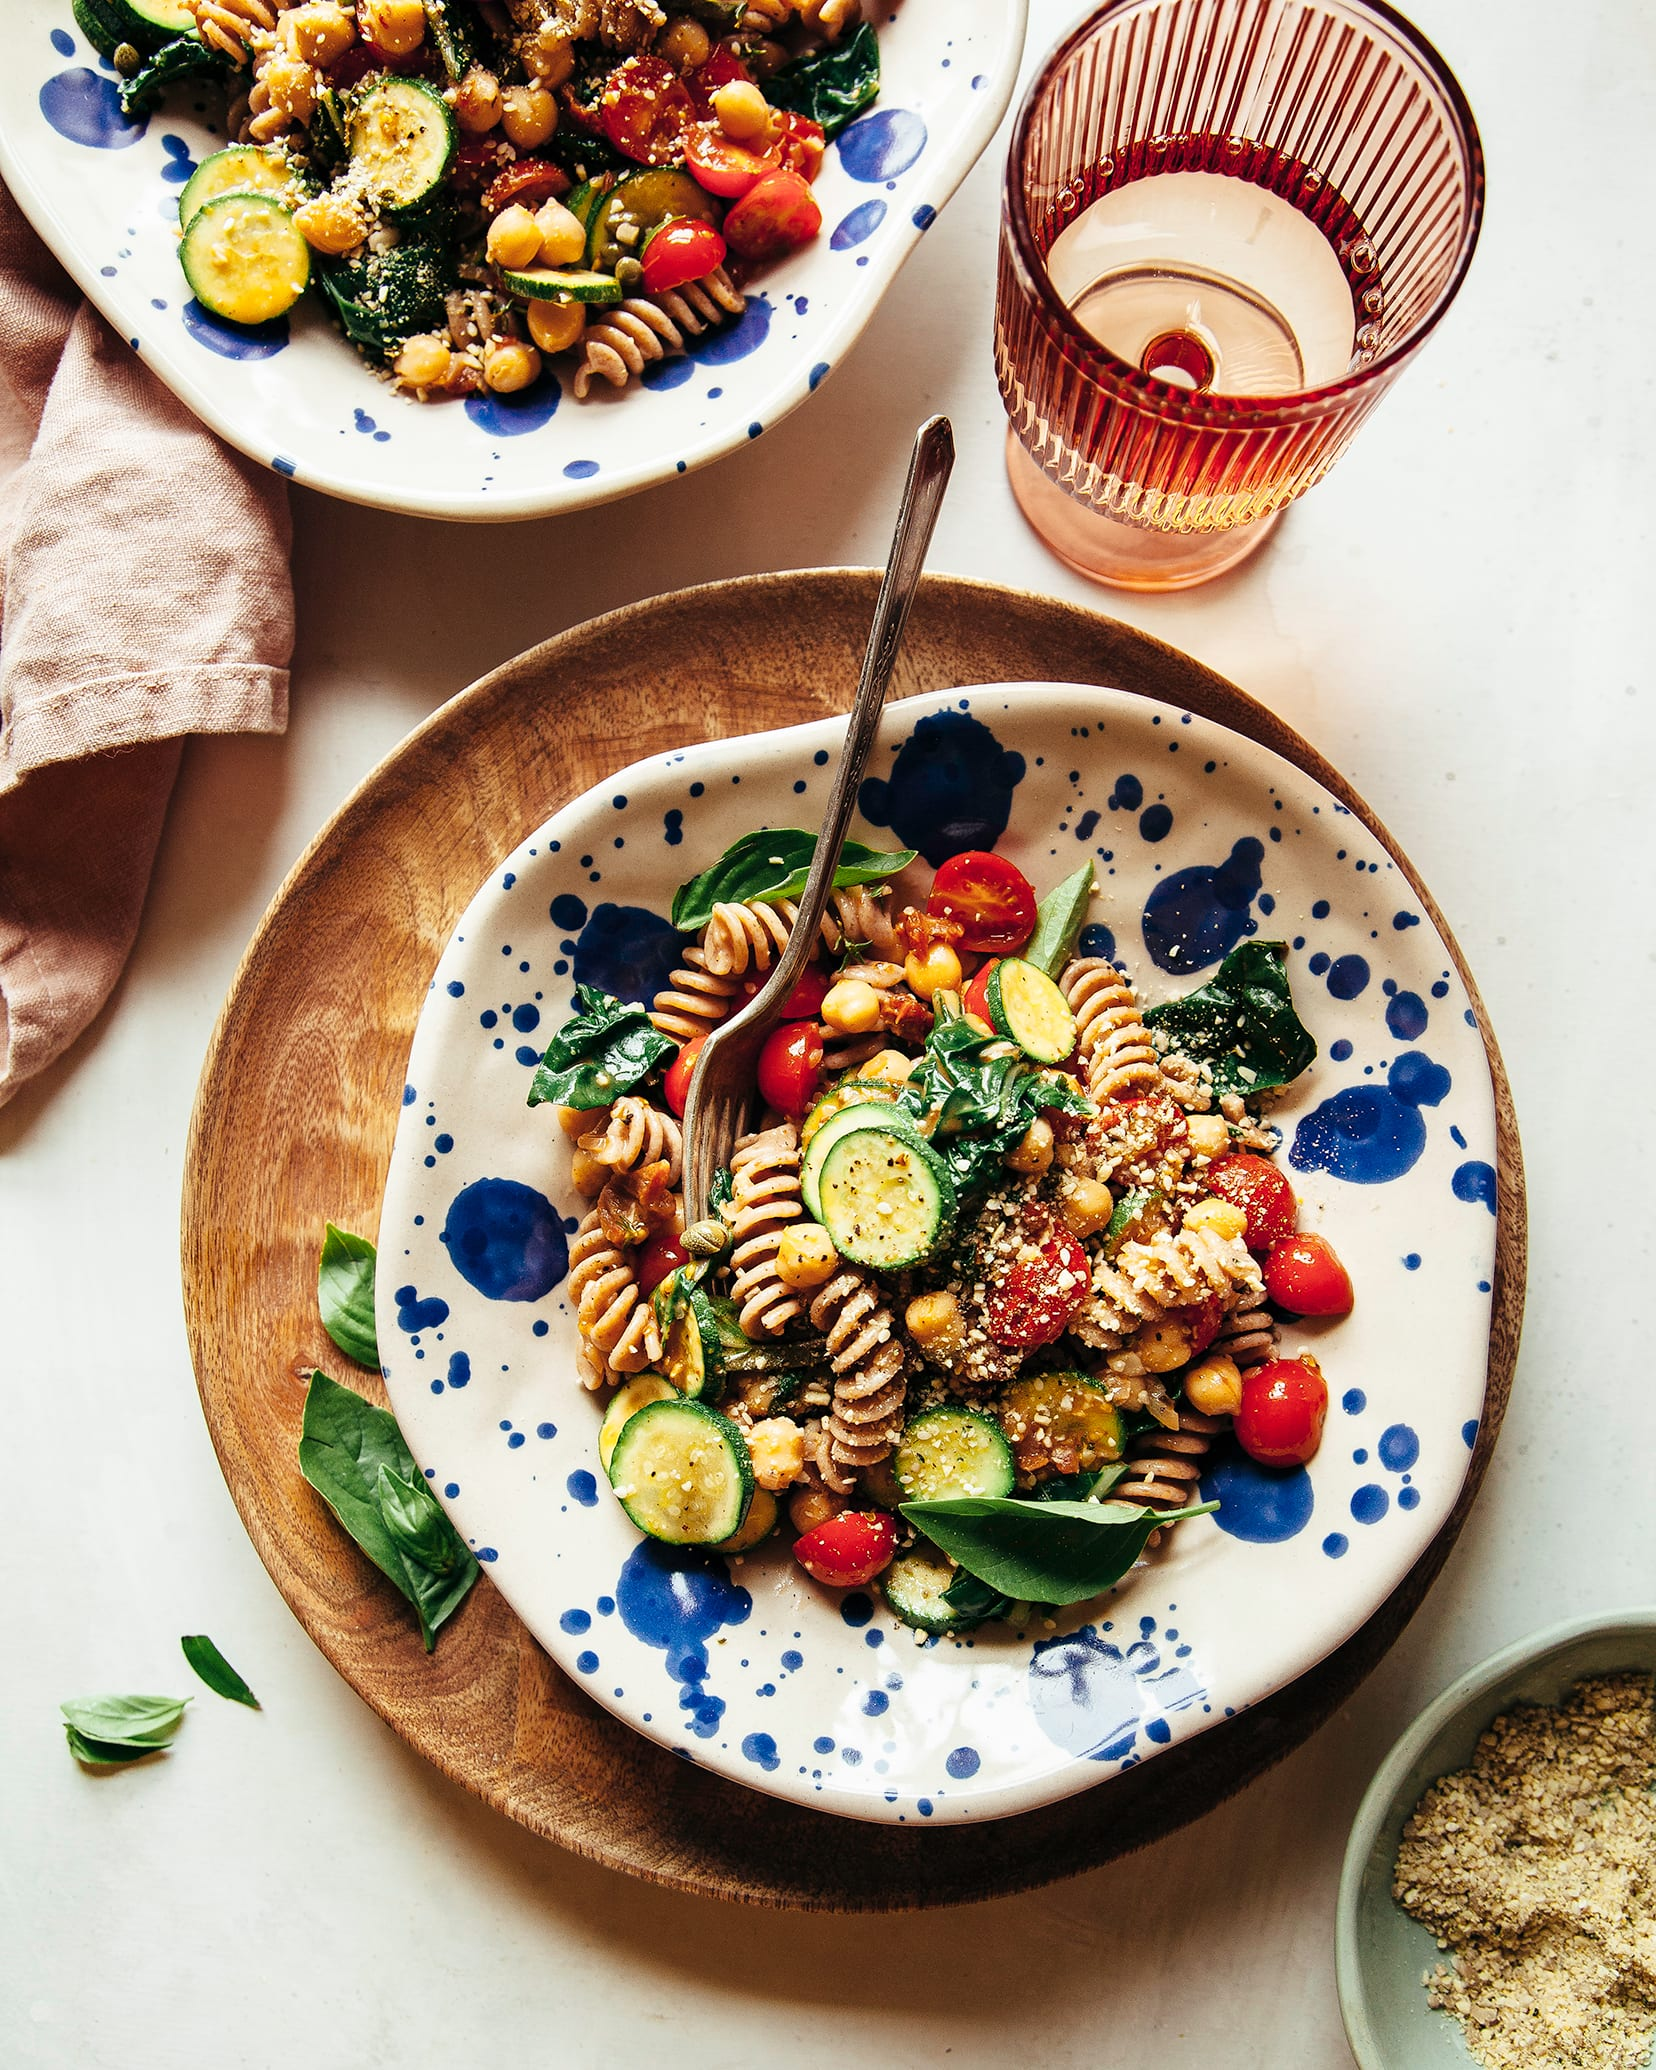 Overhead image shows a serving of rotini pasta in a blue splattered bowl. The pasta features cherry tomatoes, little zucchini rounds, chickpeas, greens, and a sprinkle of vegan